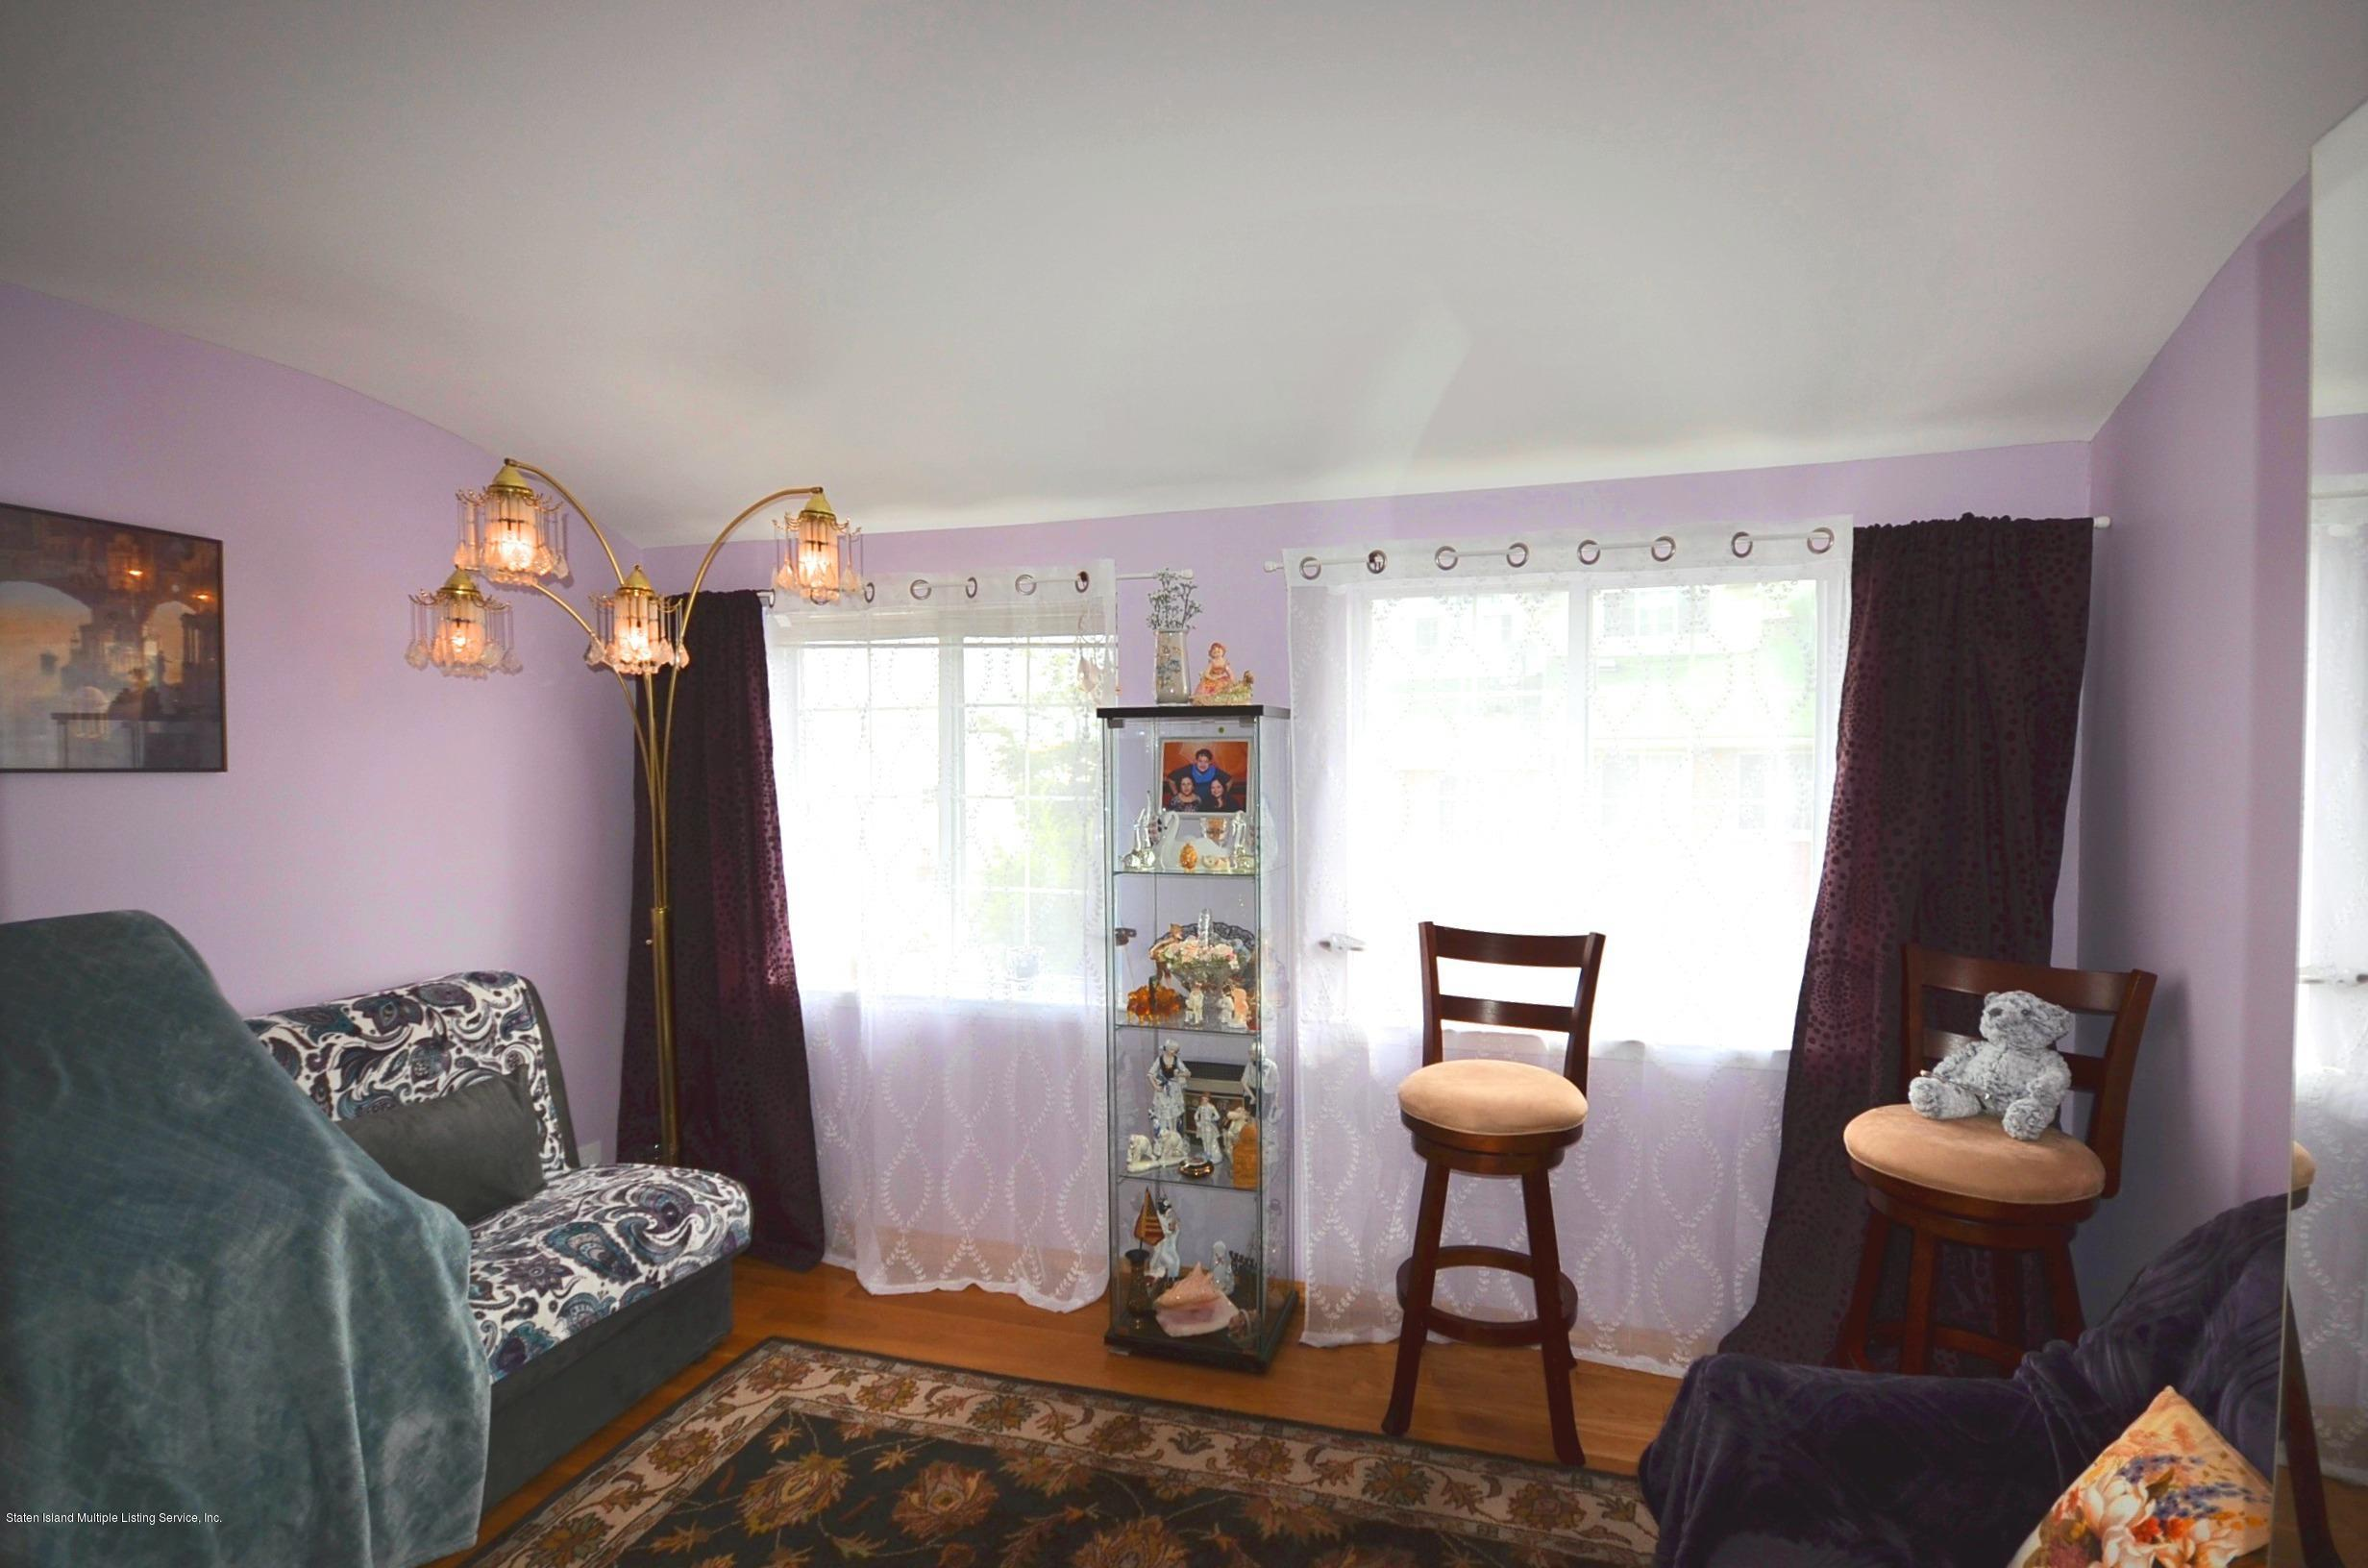 Single Family - Attached 16 Lillie Lane  Staten Island, NY 10314, MLS-1138605-14